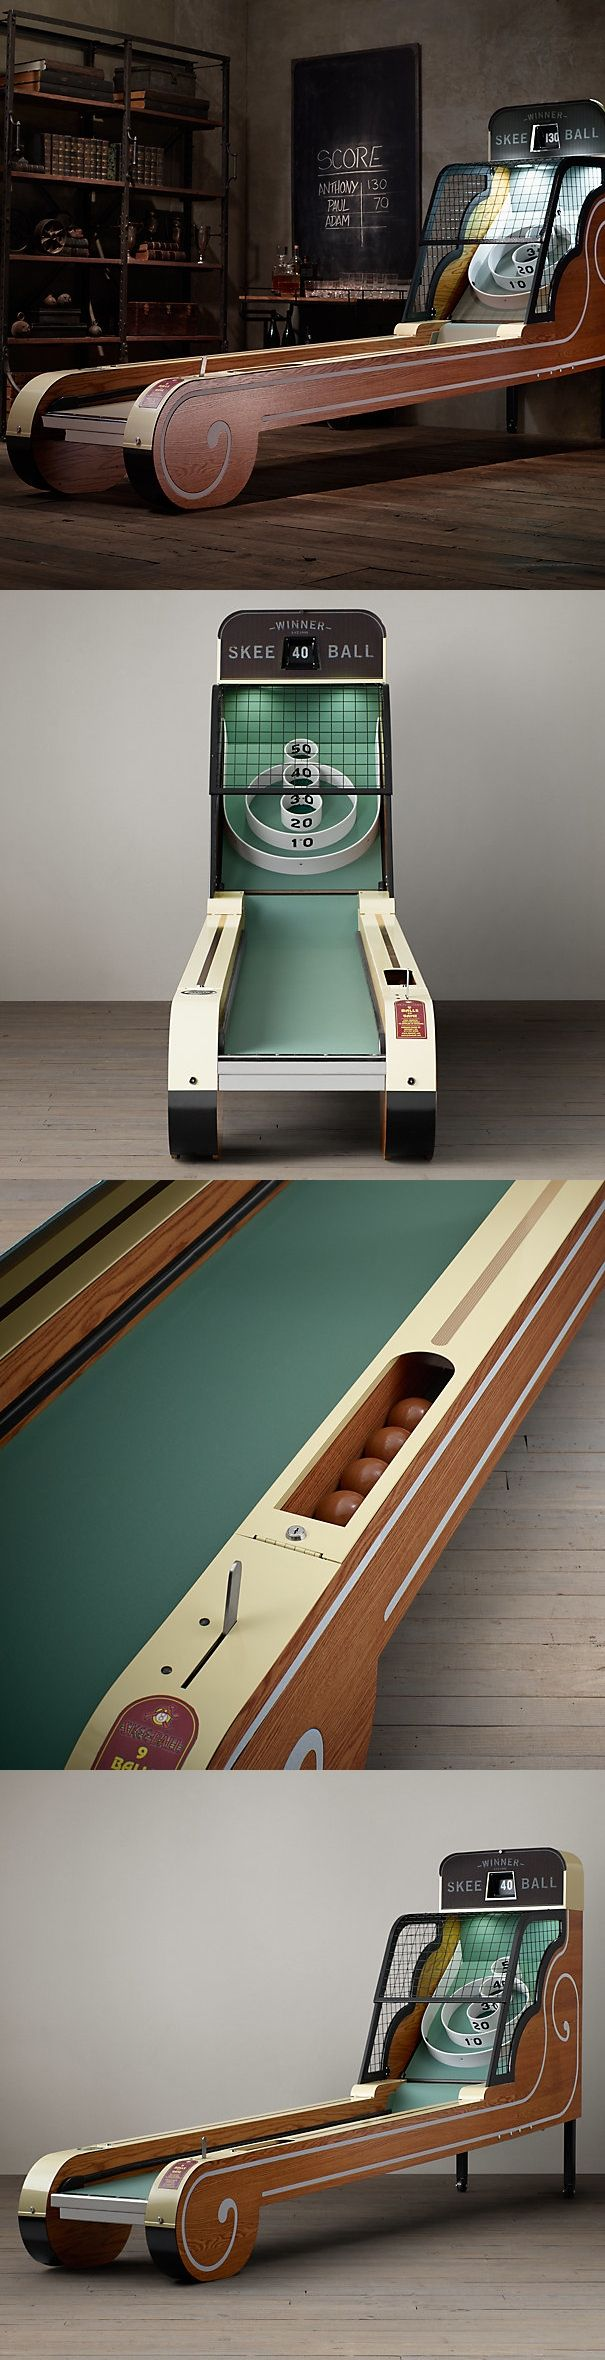 Vintage Skeeball from Restoration Hardware ($7000) - Retro oak exterior with state-of-the-art functionality, boasting an authentic flip display and pull-handle activation lever.